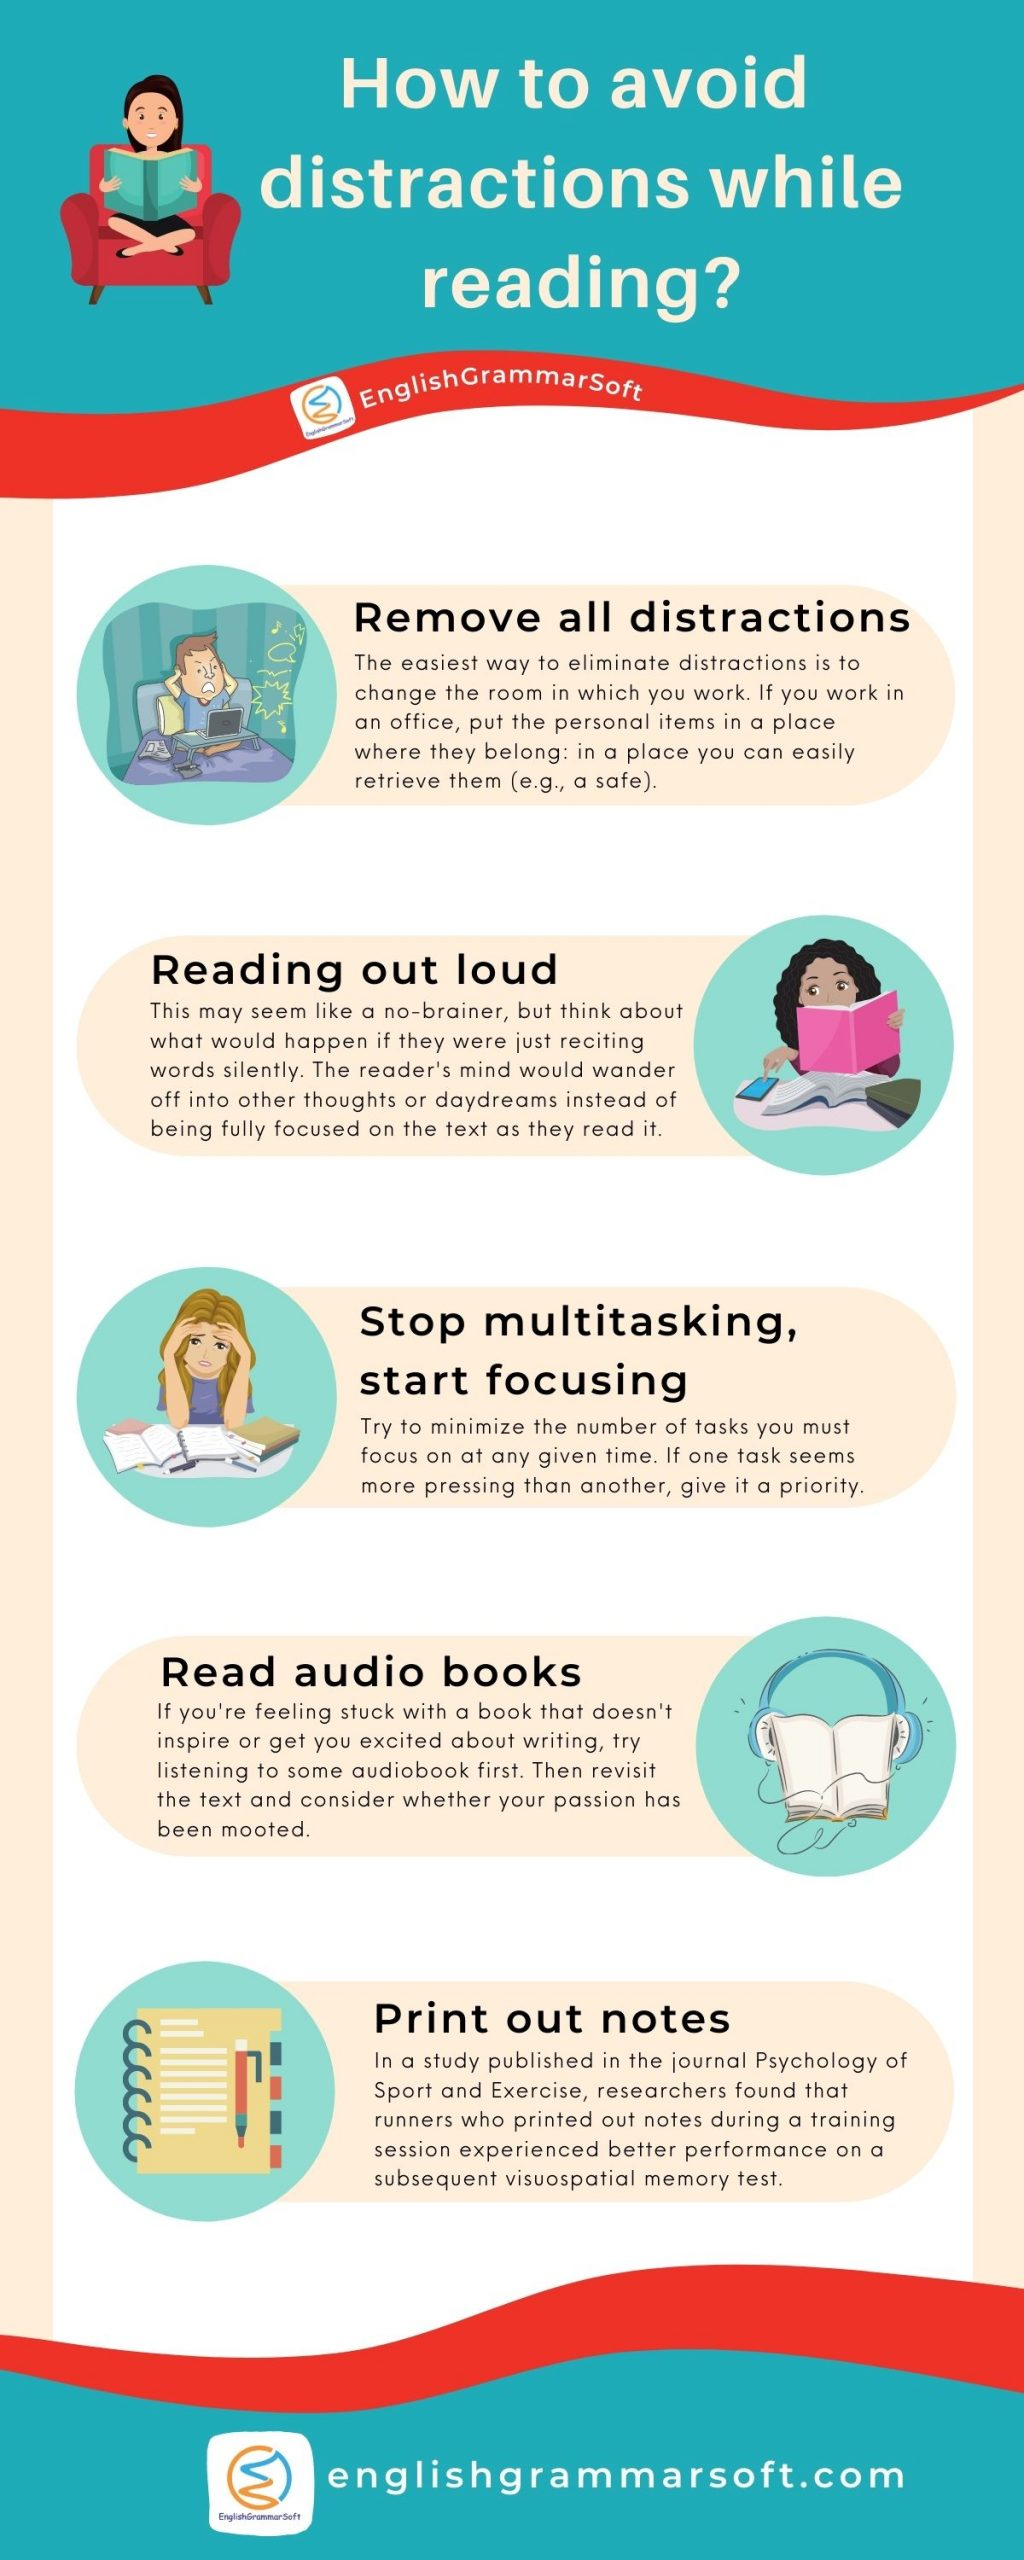 how to avoid distractions while reading